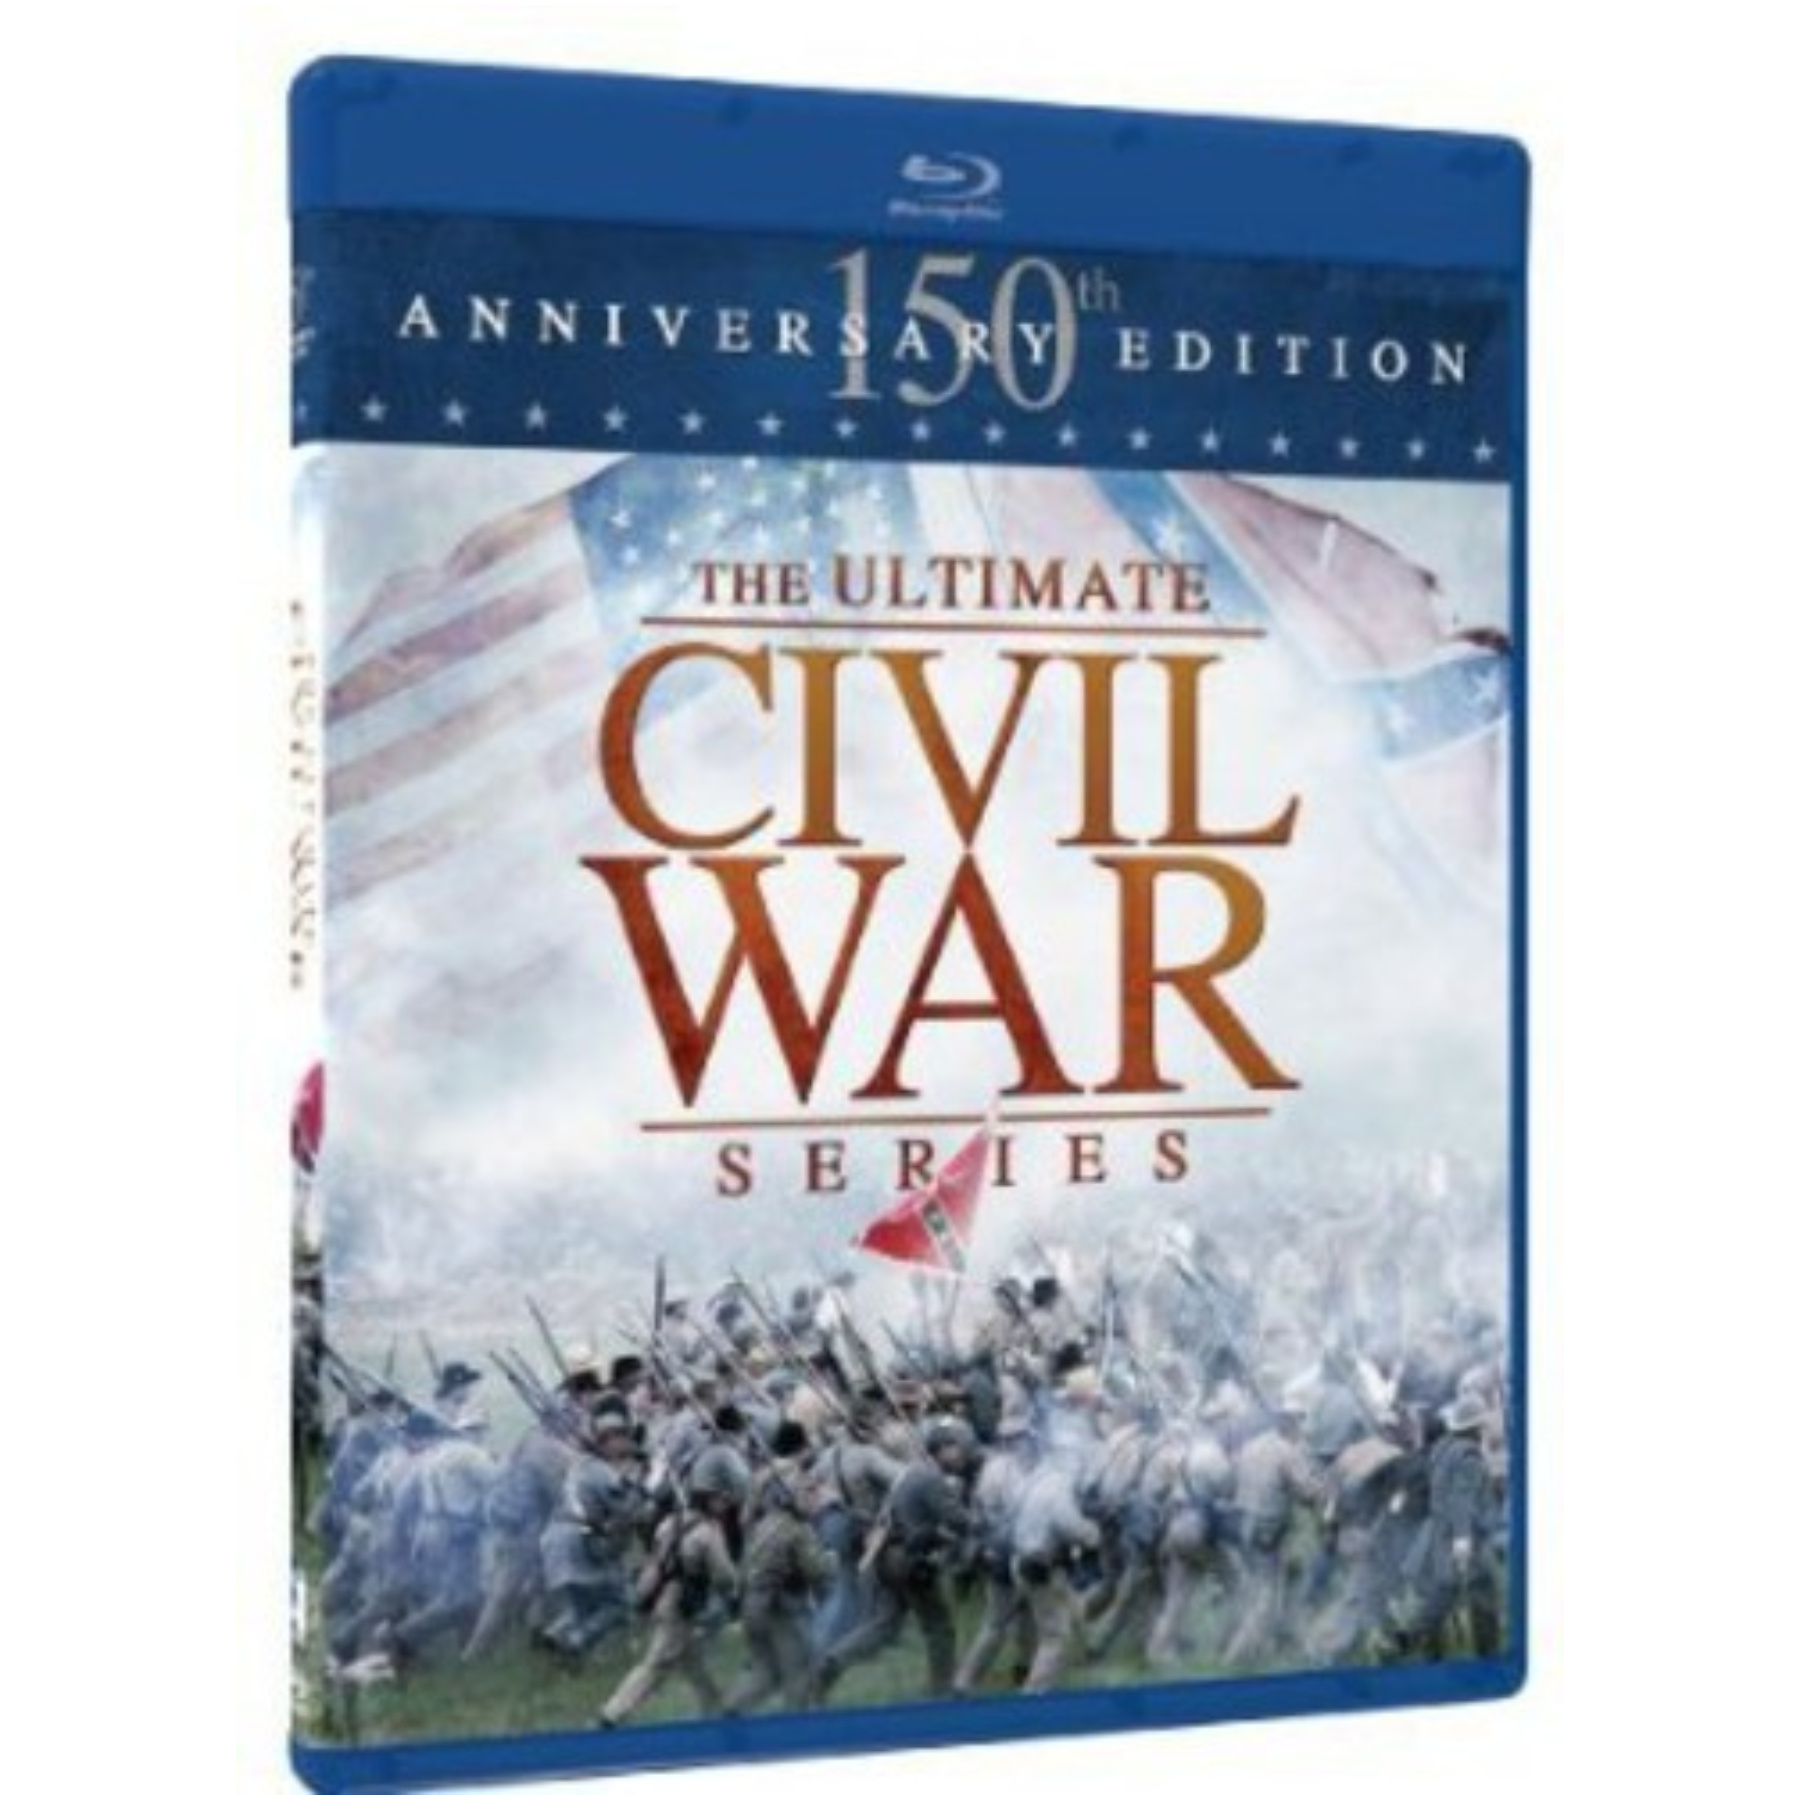 Ultimate Civil War Series-150th Anniversary Editio Blu-Ray 68390463132